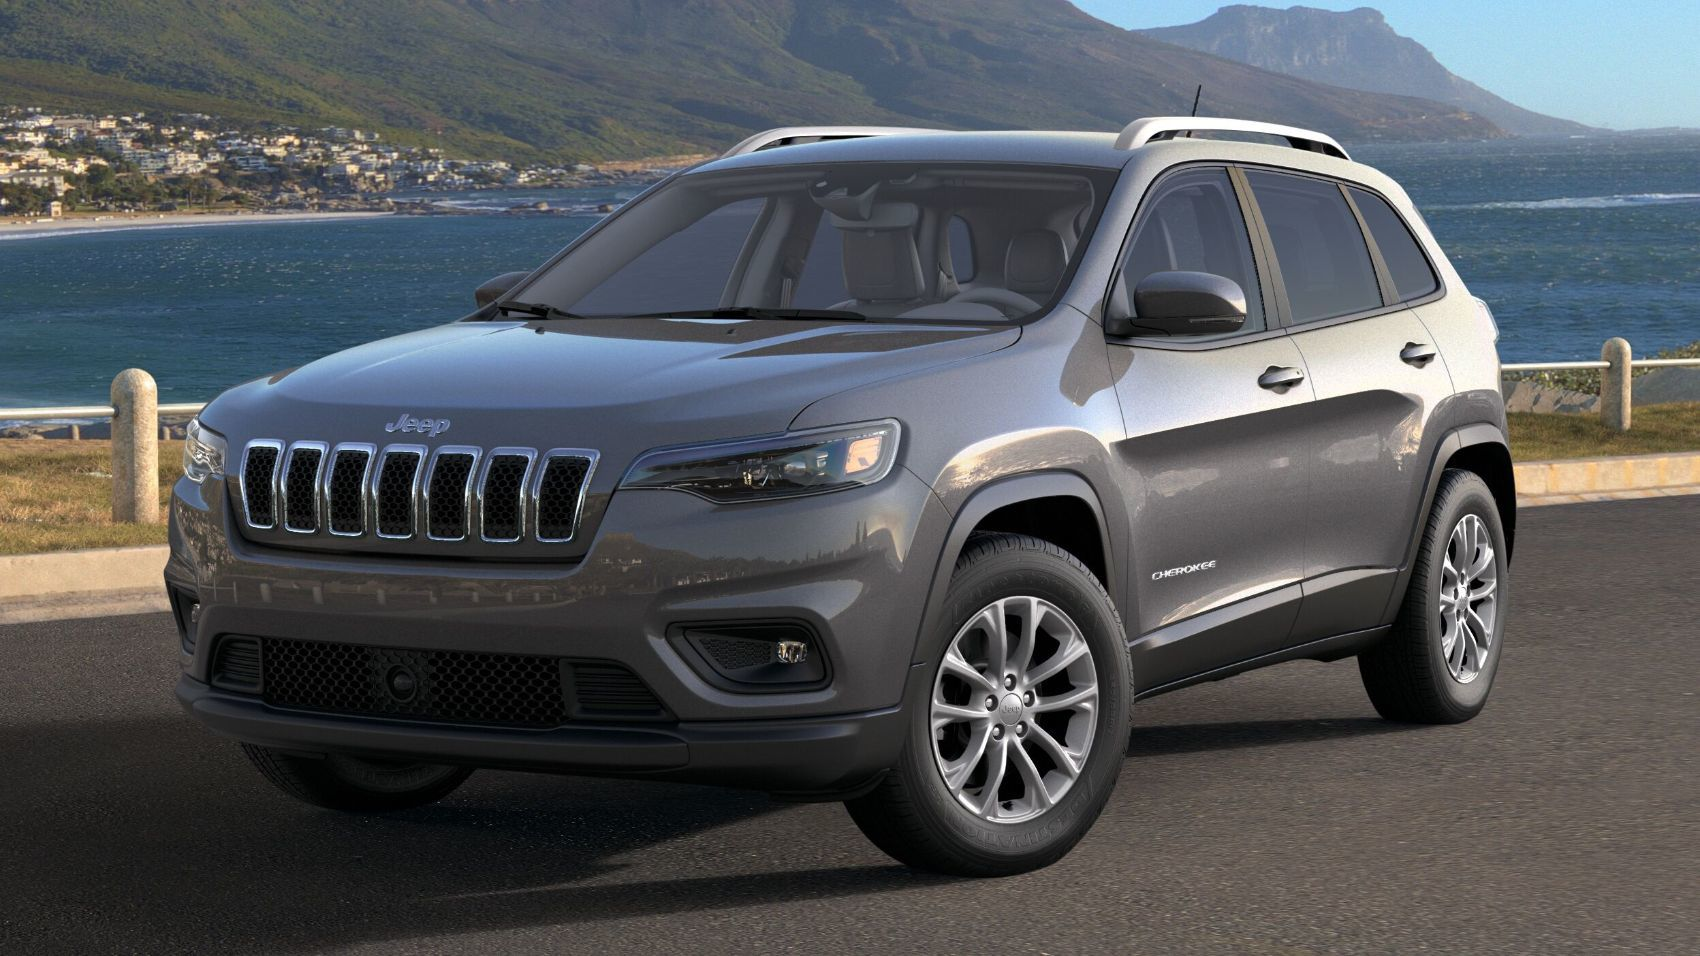 2021 Jeep Cherokee Latitude LUX: Meet The New Member of The Cherokee Lineup